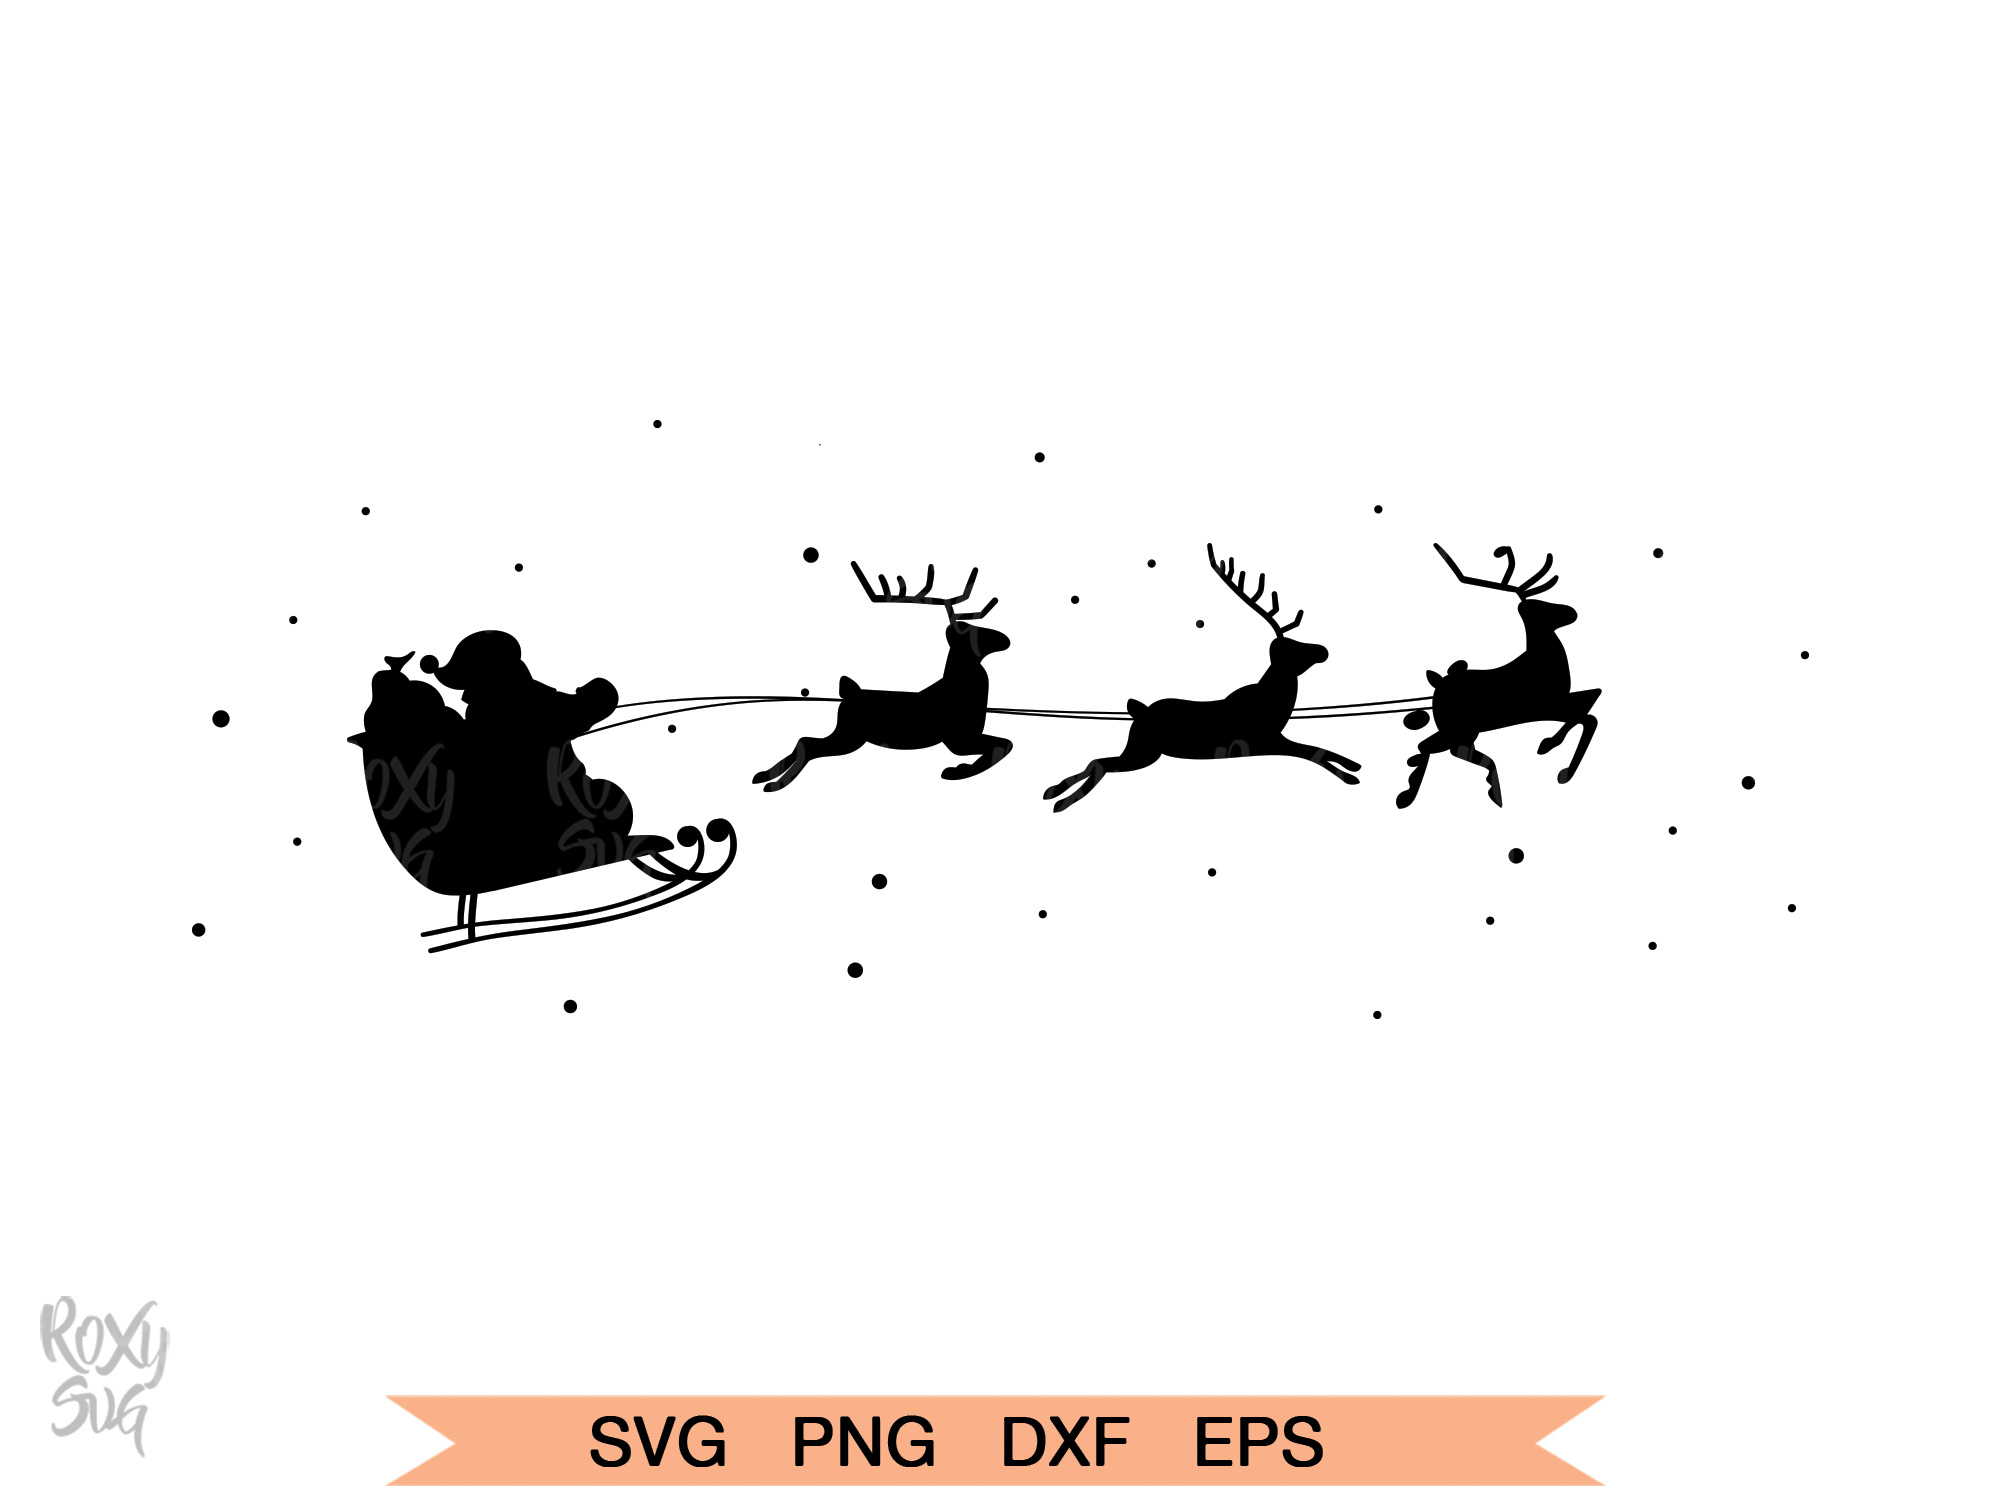 Download Free Santa Claus Reindeer Graphic By Roxysvg26 Creative Fabrica for Cricut Explore, Silhouette and other cutting machines.